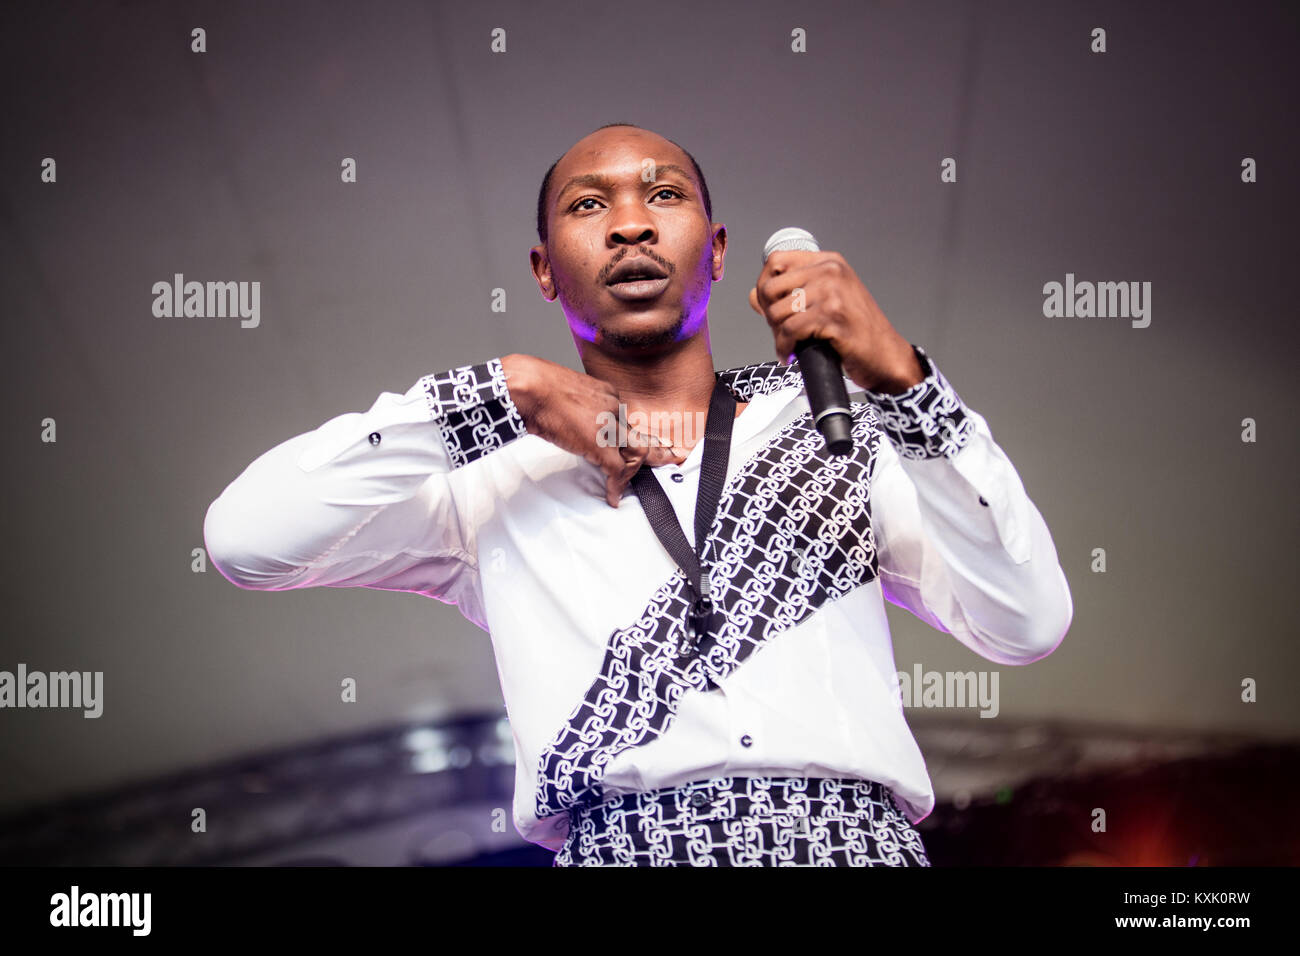 The Nigerian musician and saxophonist Seun Kuti (pictured